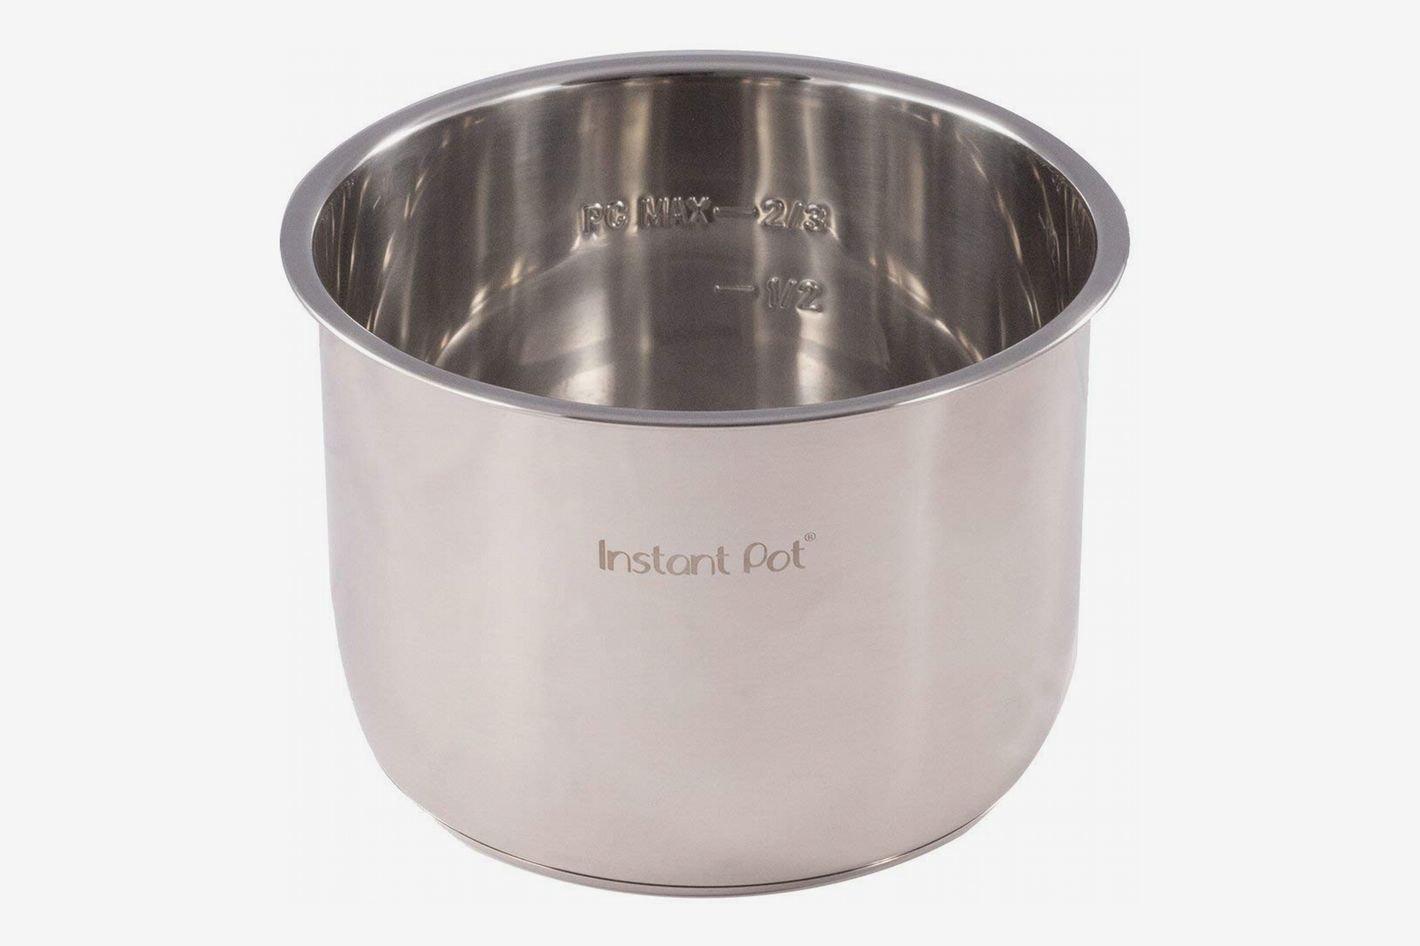 Genuine Instant Pot Stainless Steel Inner Cooking Pot, 6-Quart